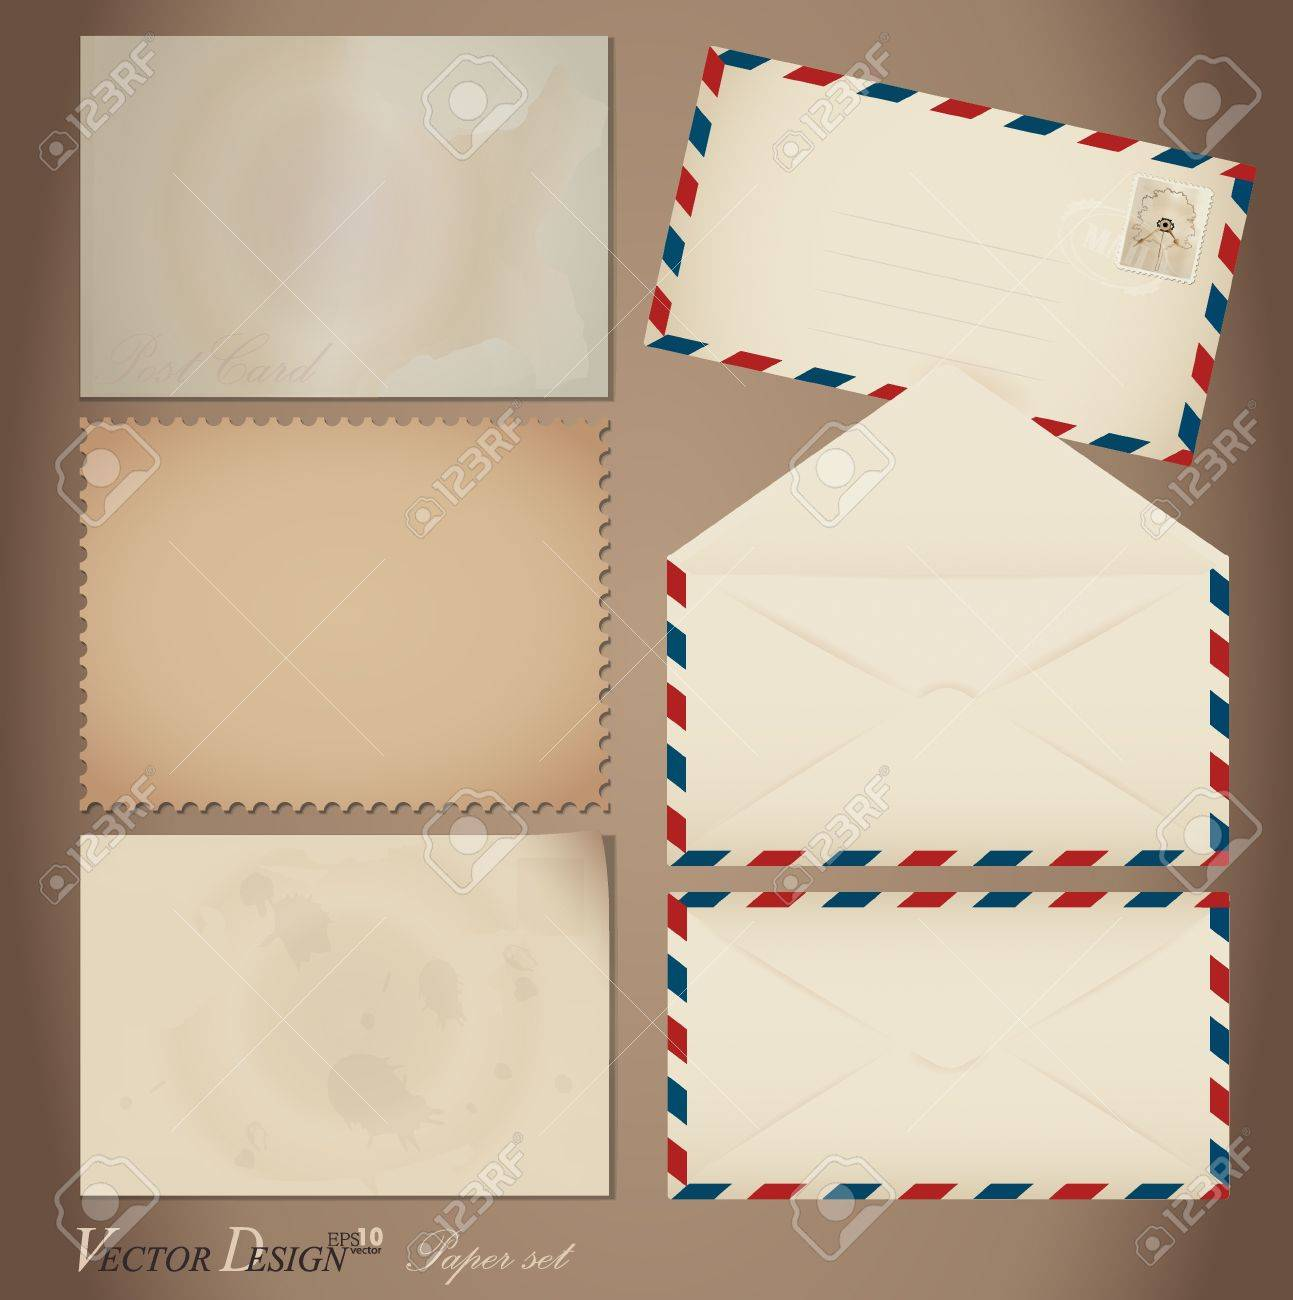 Vintage paper designs  various note papers, ready for your message Stock Vector - 14178109